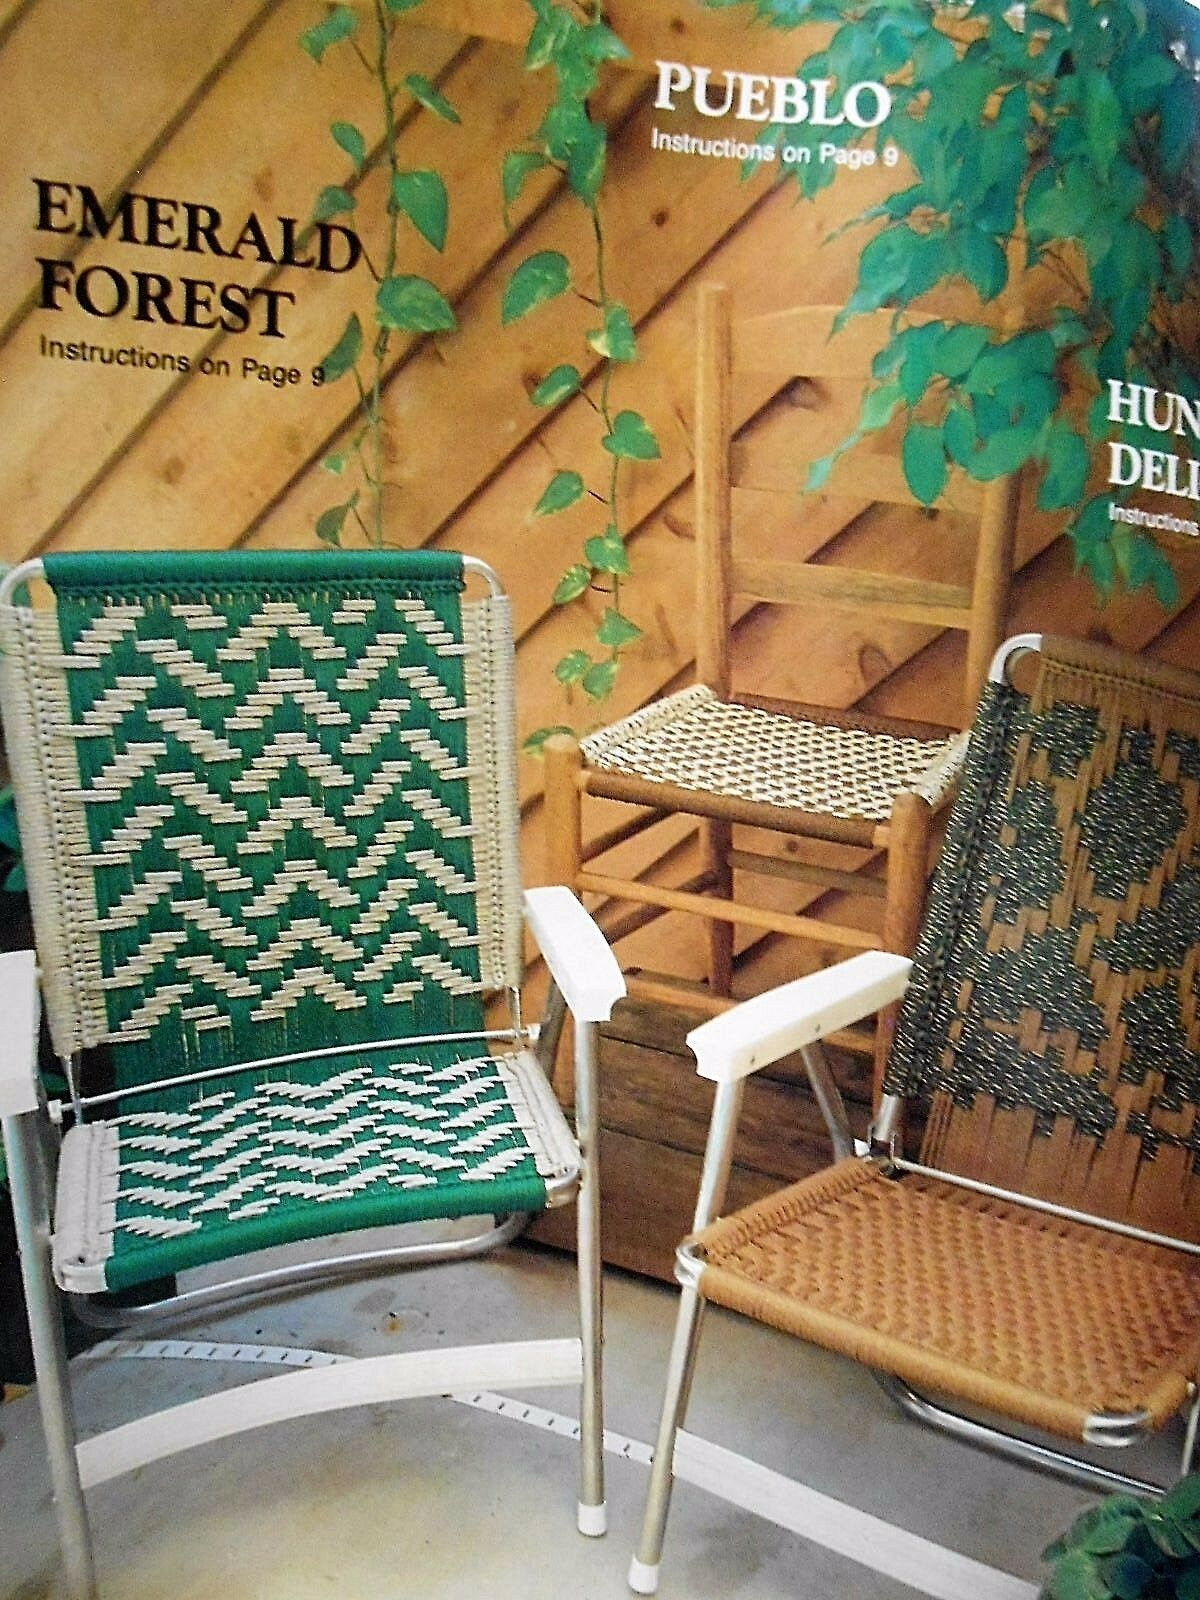 Macrame Lawn Chair Patterns Seats 15 Geometric Designs For Sale Online